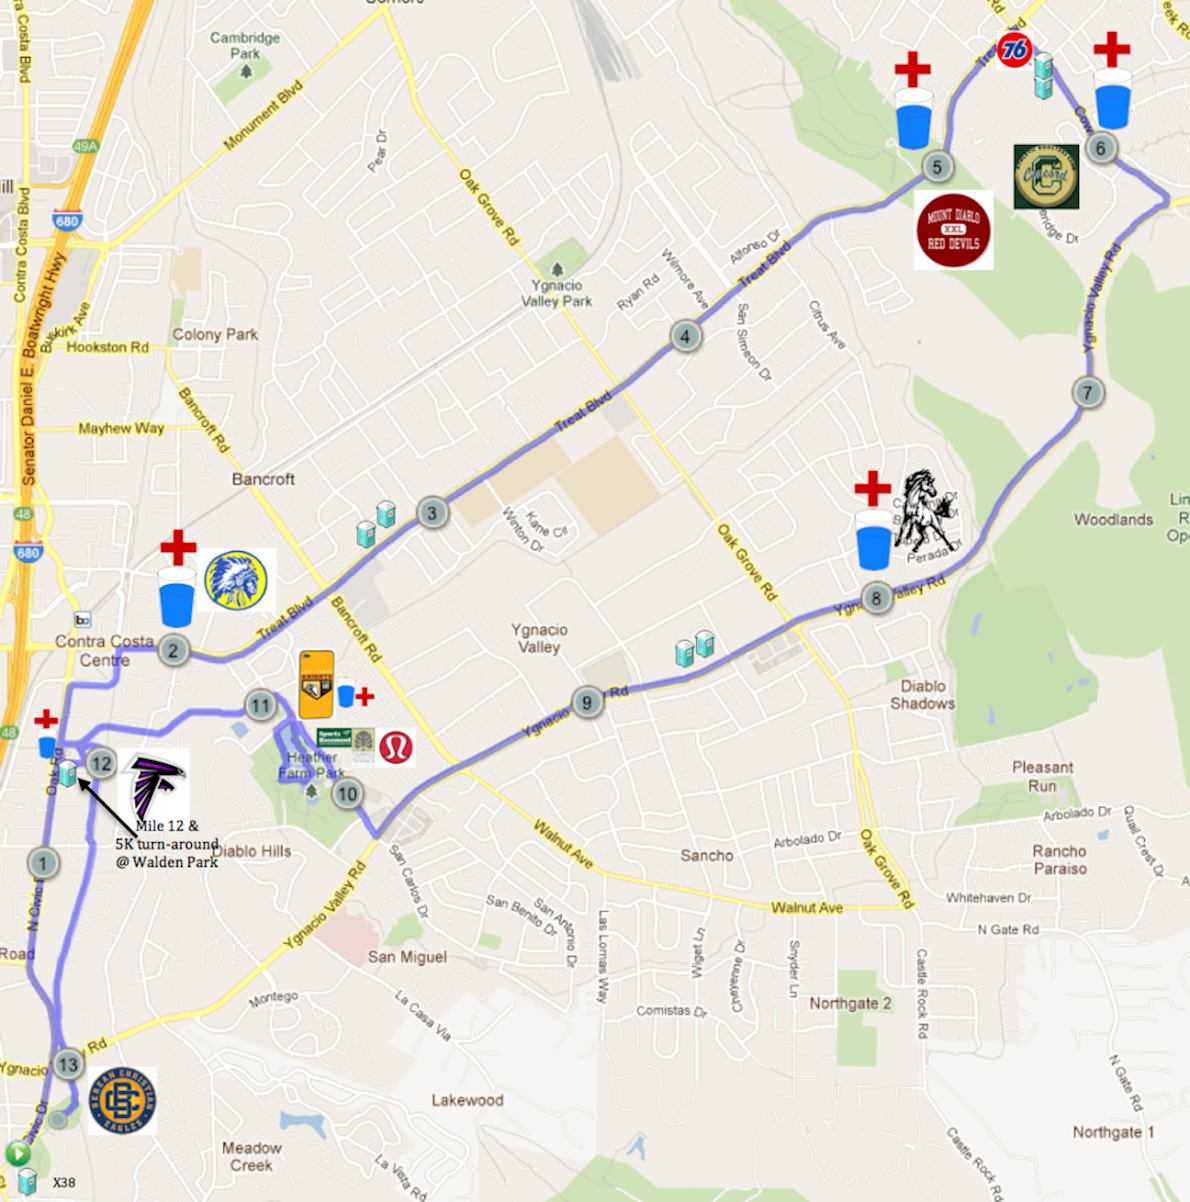 Walnut Creek Running Festival at Christmas Mappa del percorso